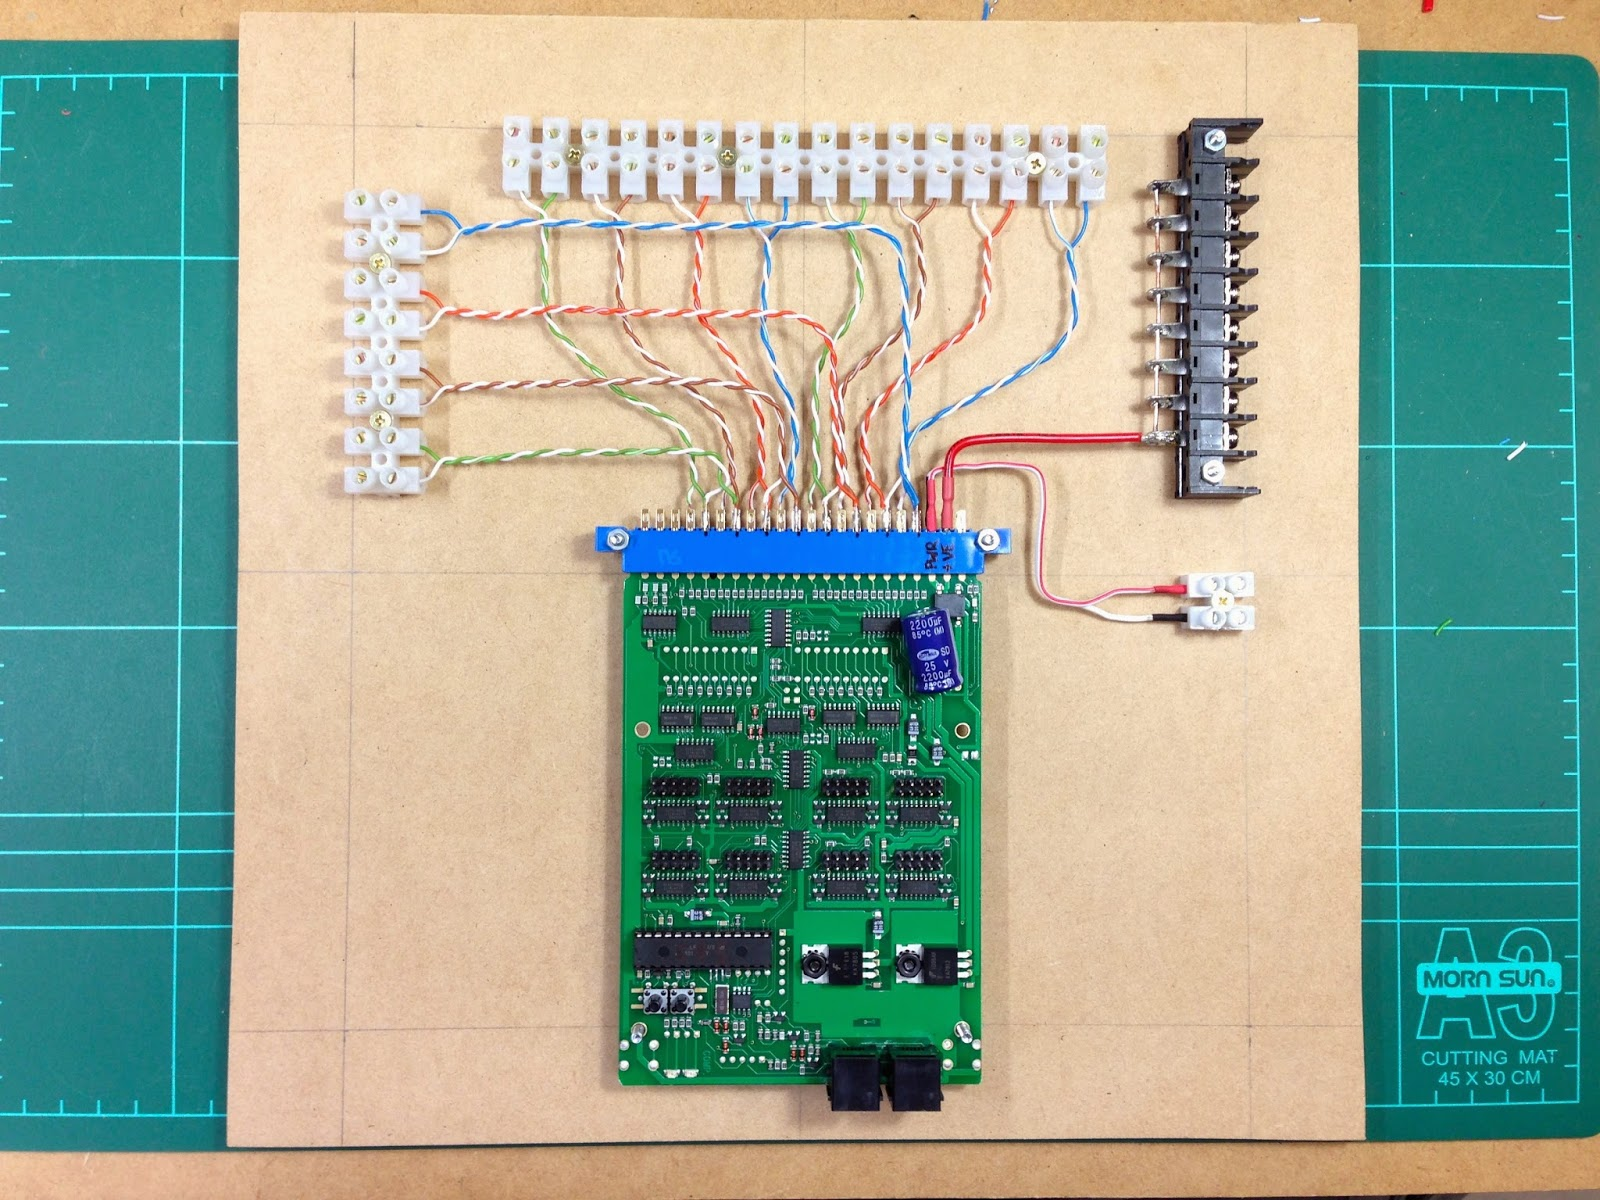 Jlandt Railroad March 2015 Simple Circuit Board Rrcirkits Inc Home Page So In Total We Have Eight 8 Se8cs Three 3 Bdl168s All Placed Onto Mounting Boards And Around The Layout